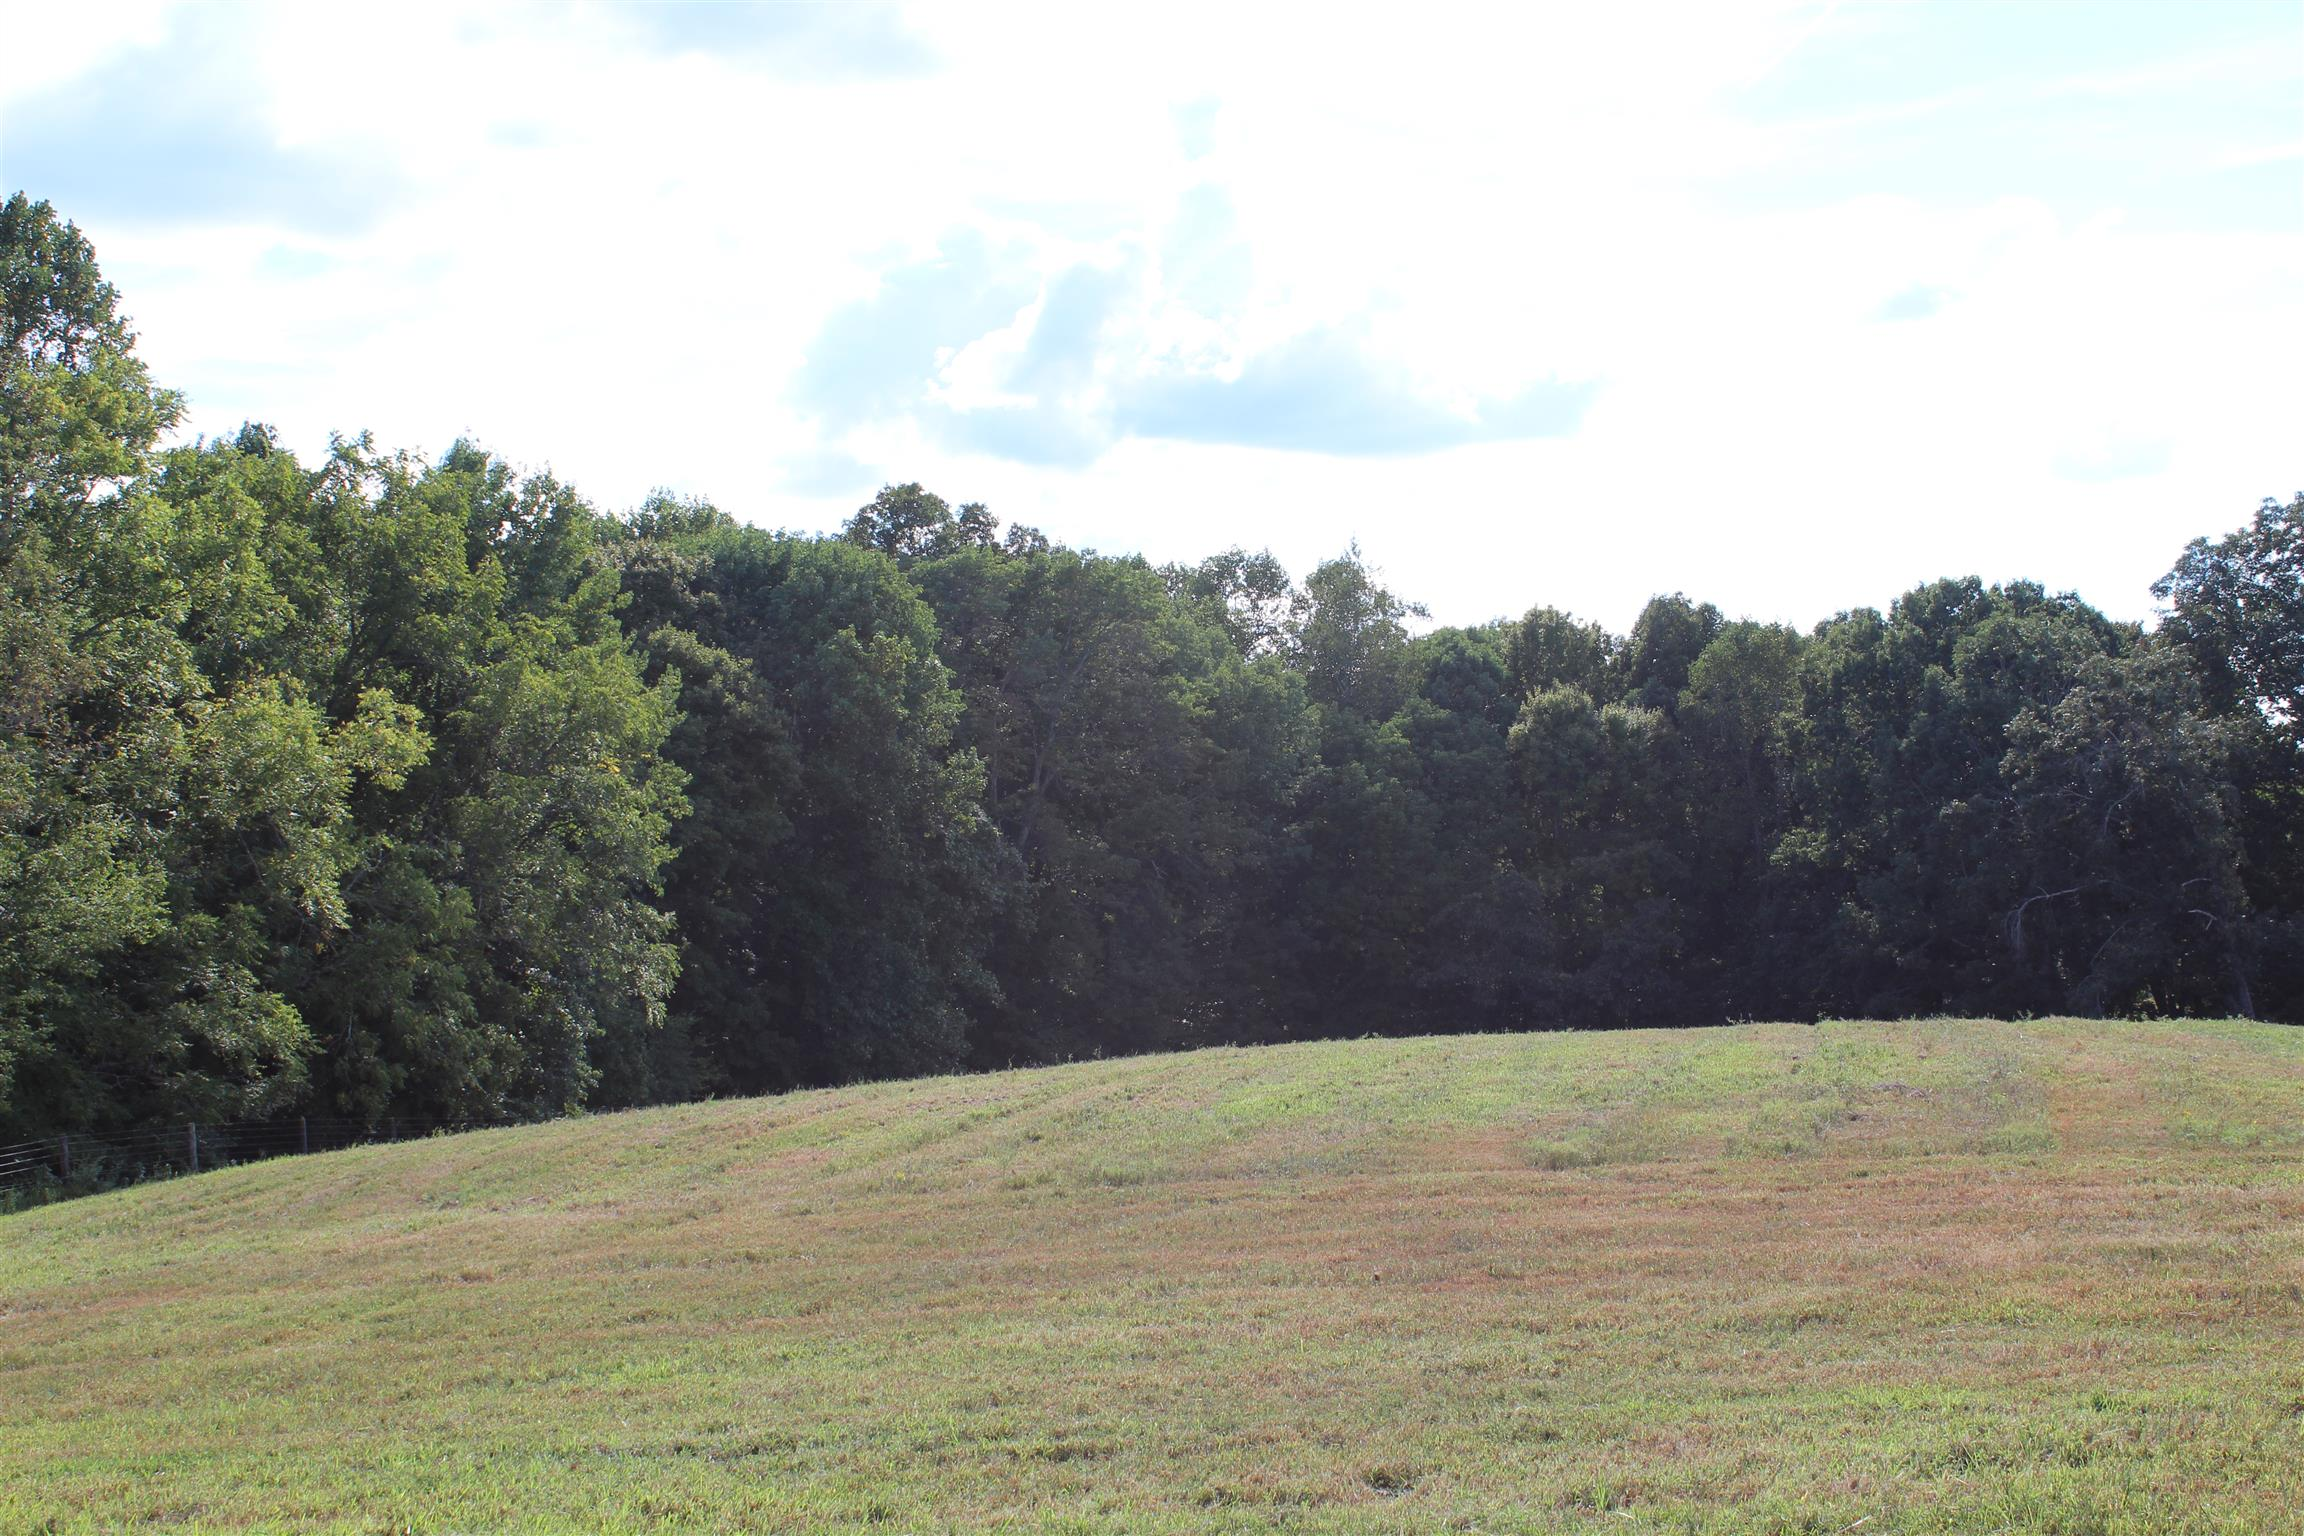 5 Hickory Point Rd (Lot 5), Clarksville, TN 37043 - Clarksville, TN real estate listing